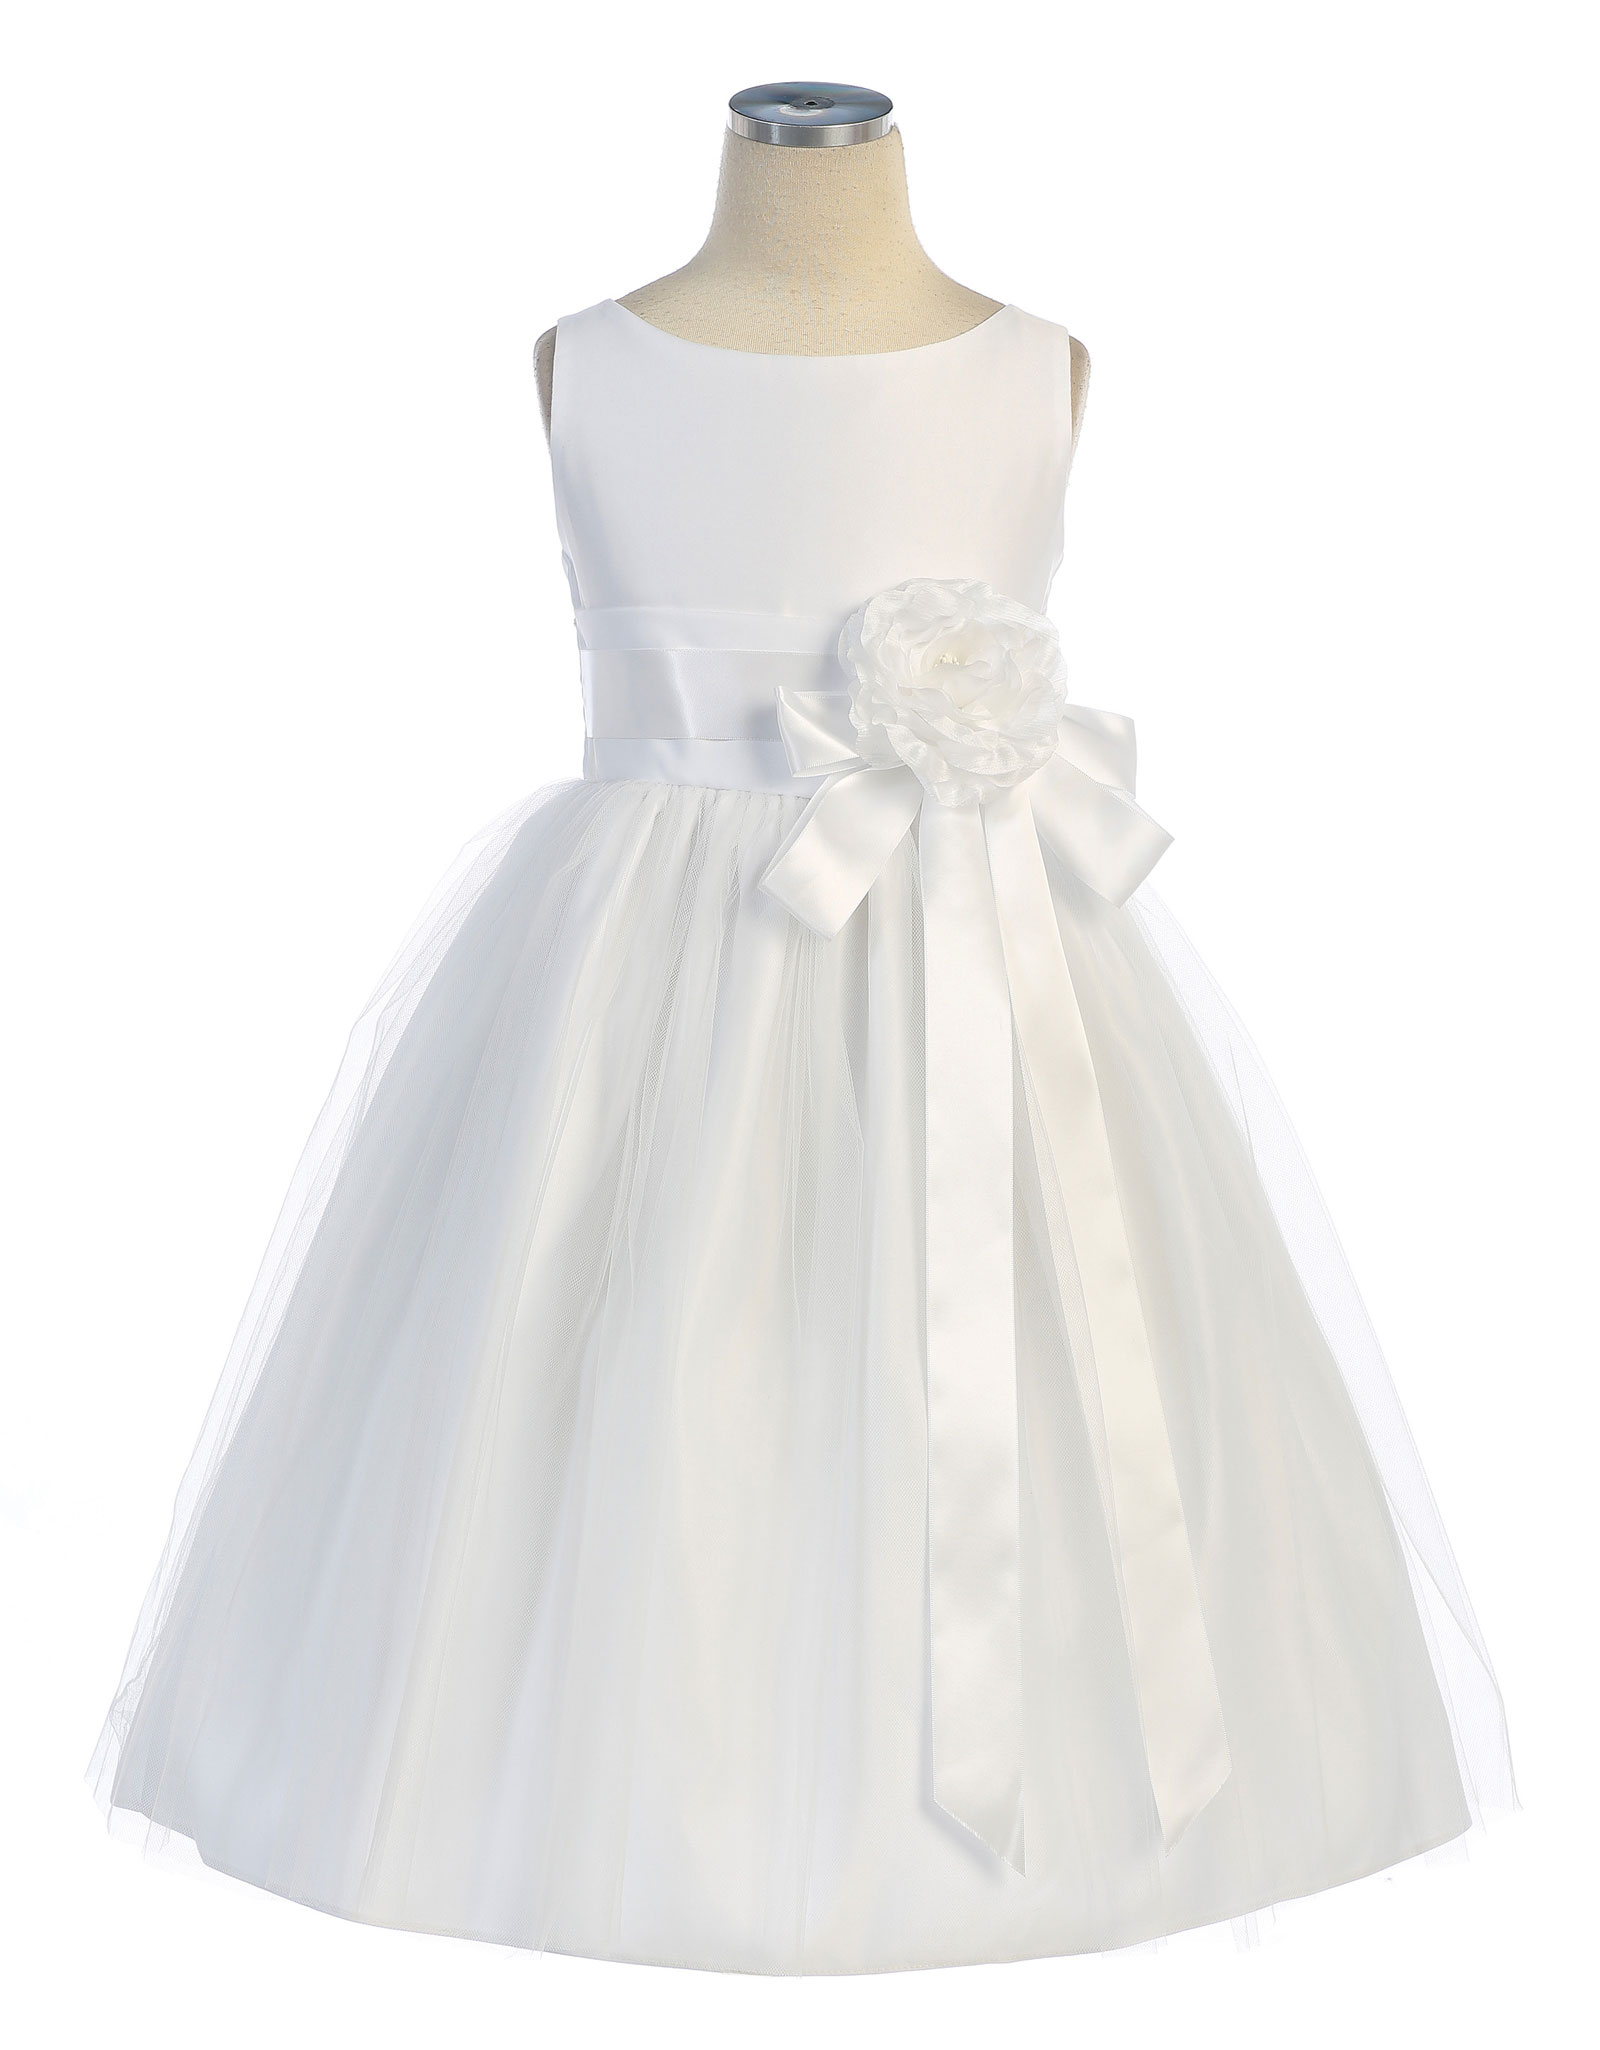 SK 402W Girls Dress Style 402 Sleeveless Satin and